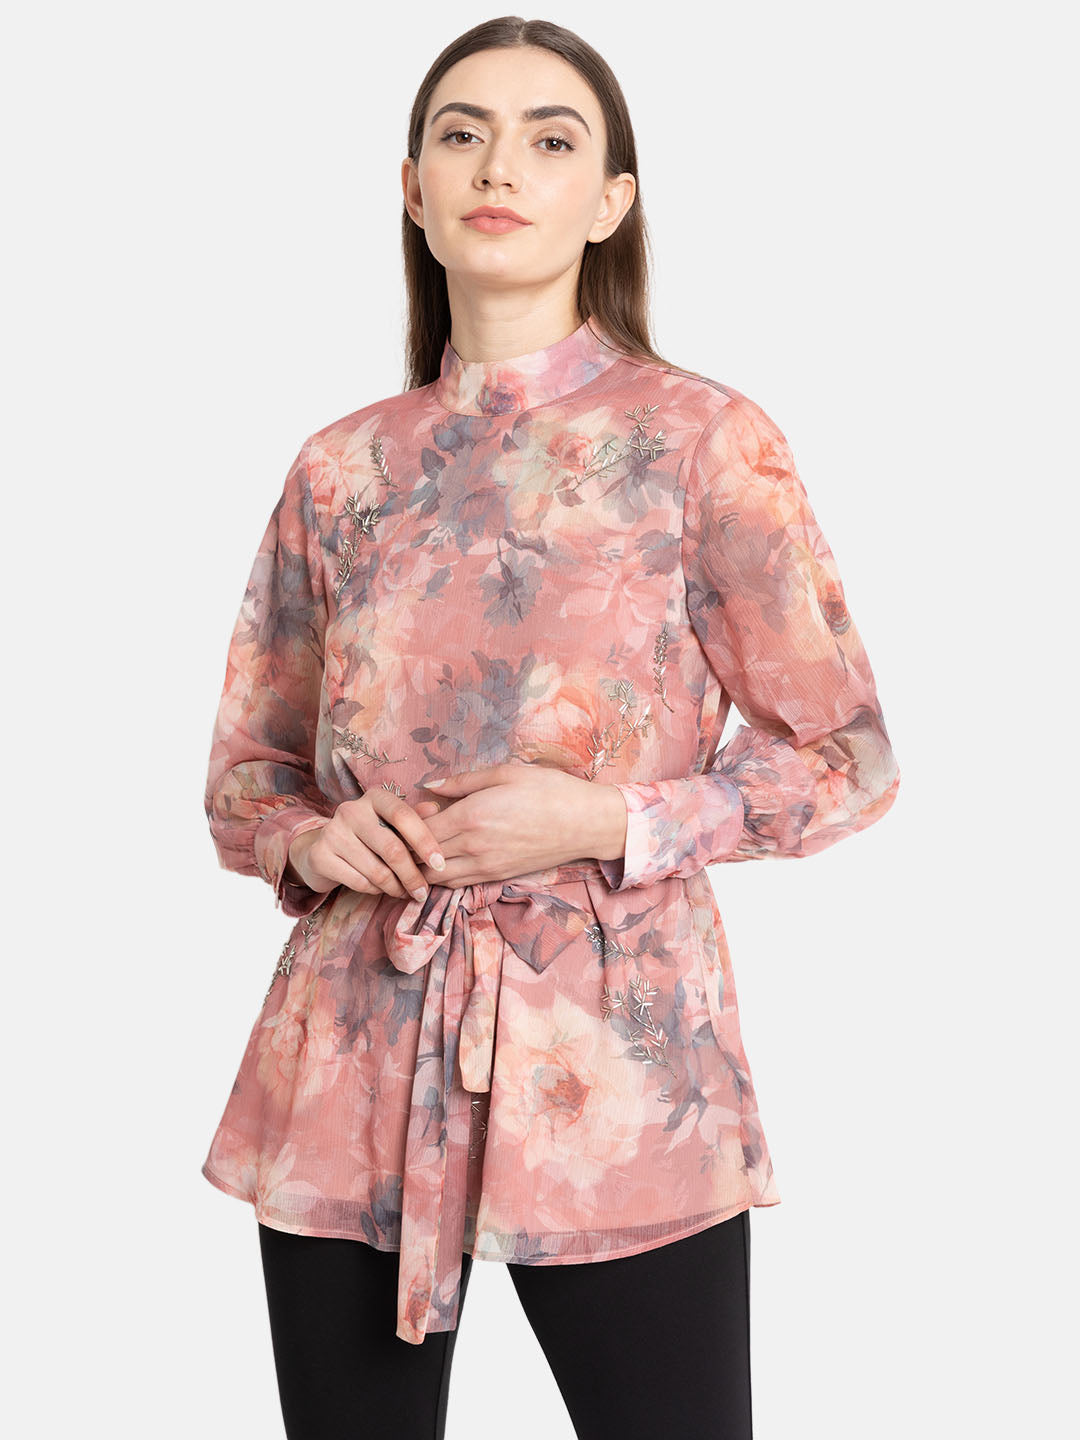 Floral Printed Tunic With Embellishment